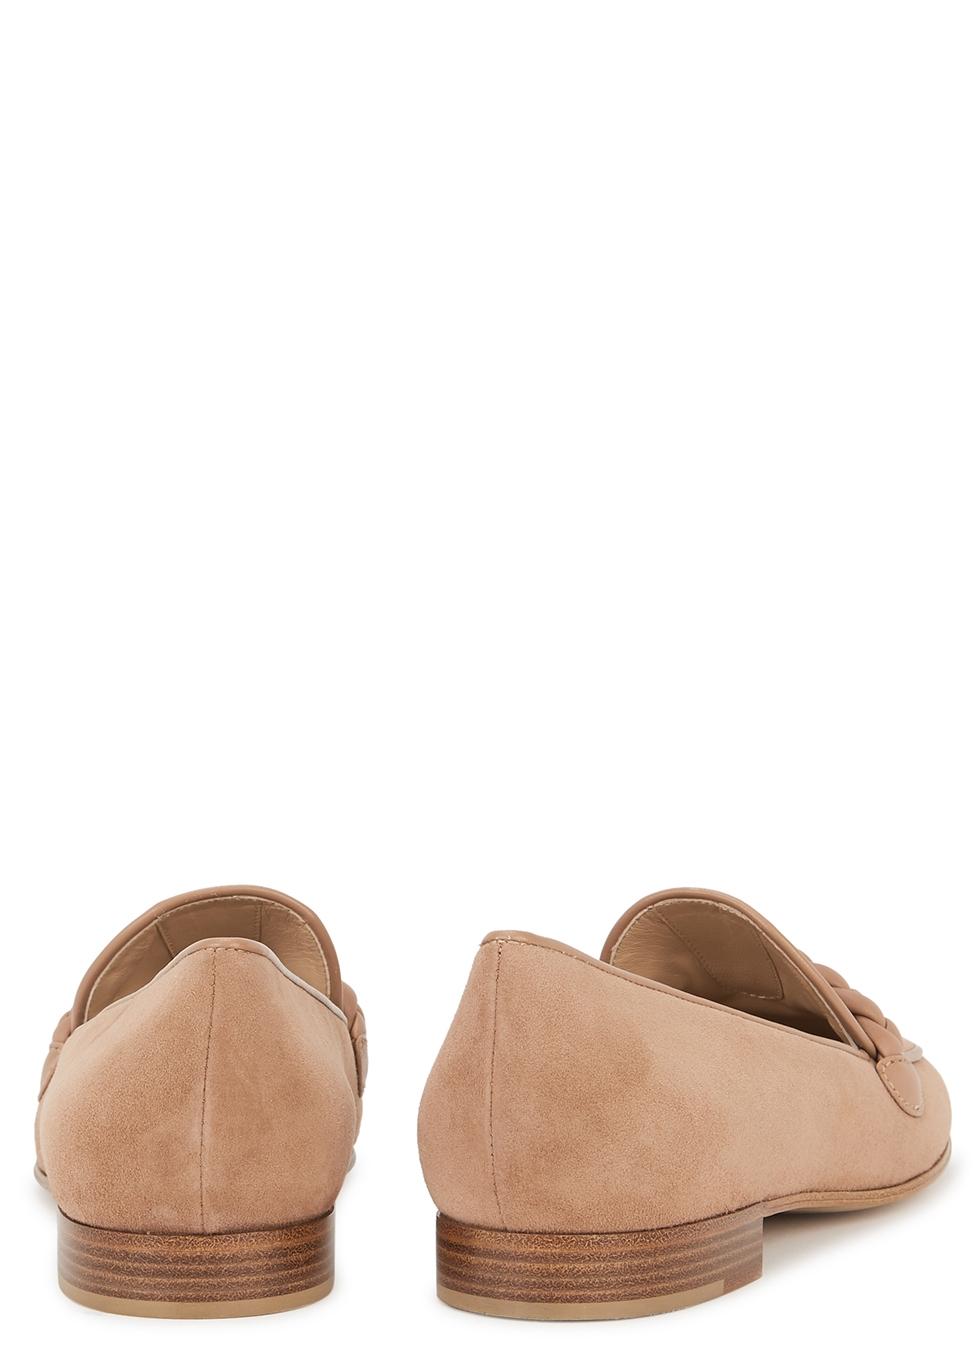 Gianvito Rossi Dusky pink suede loafers